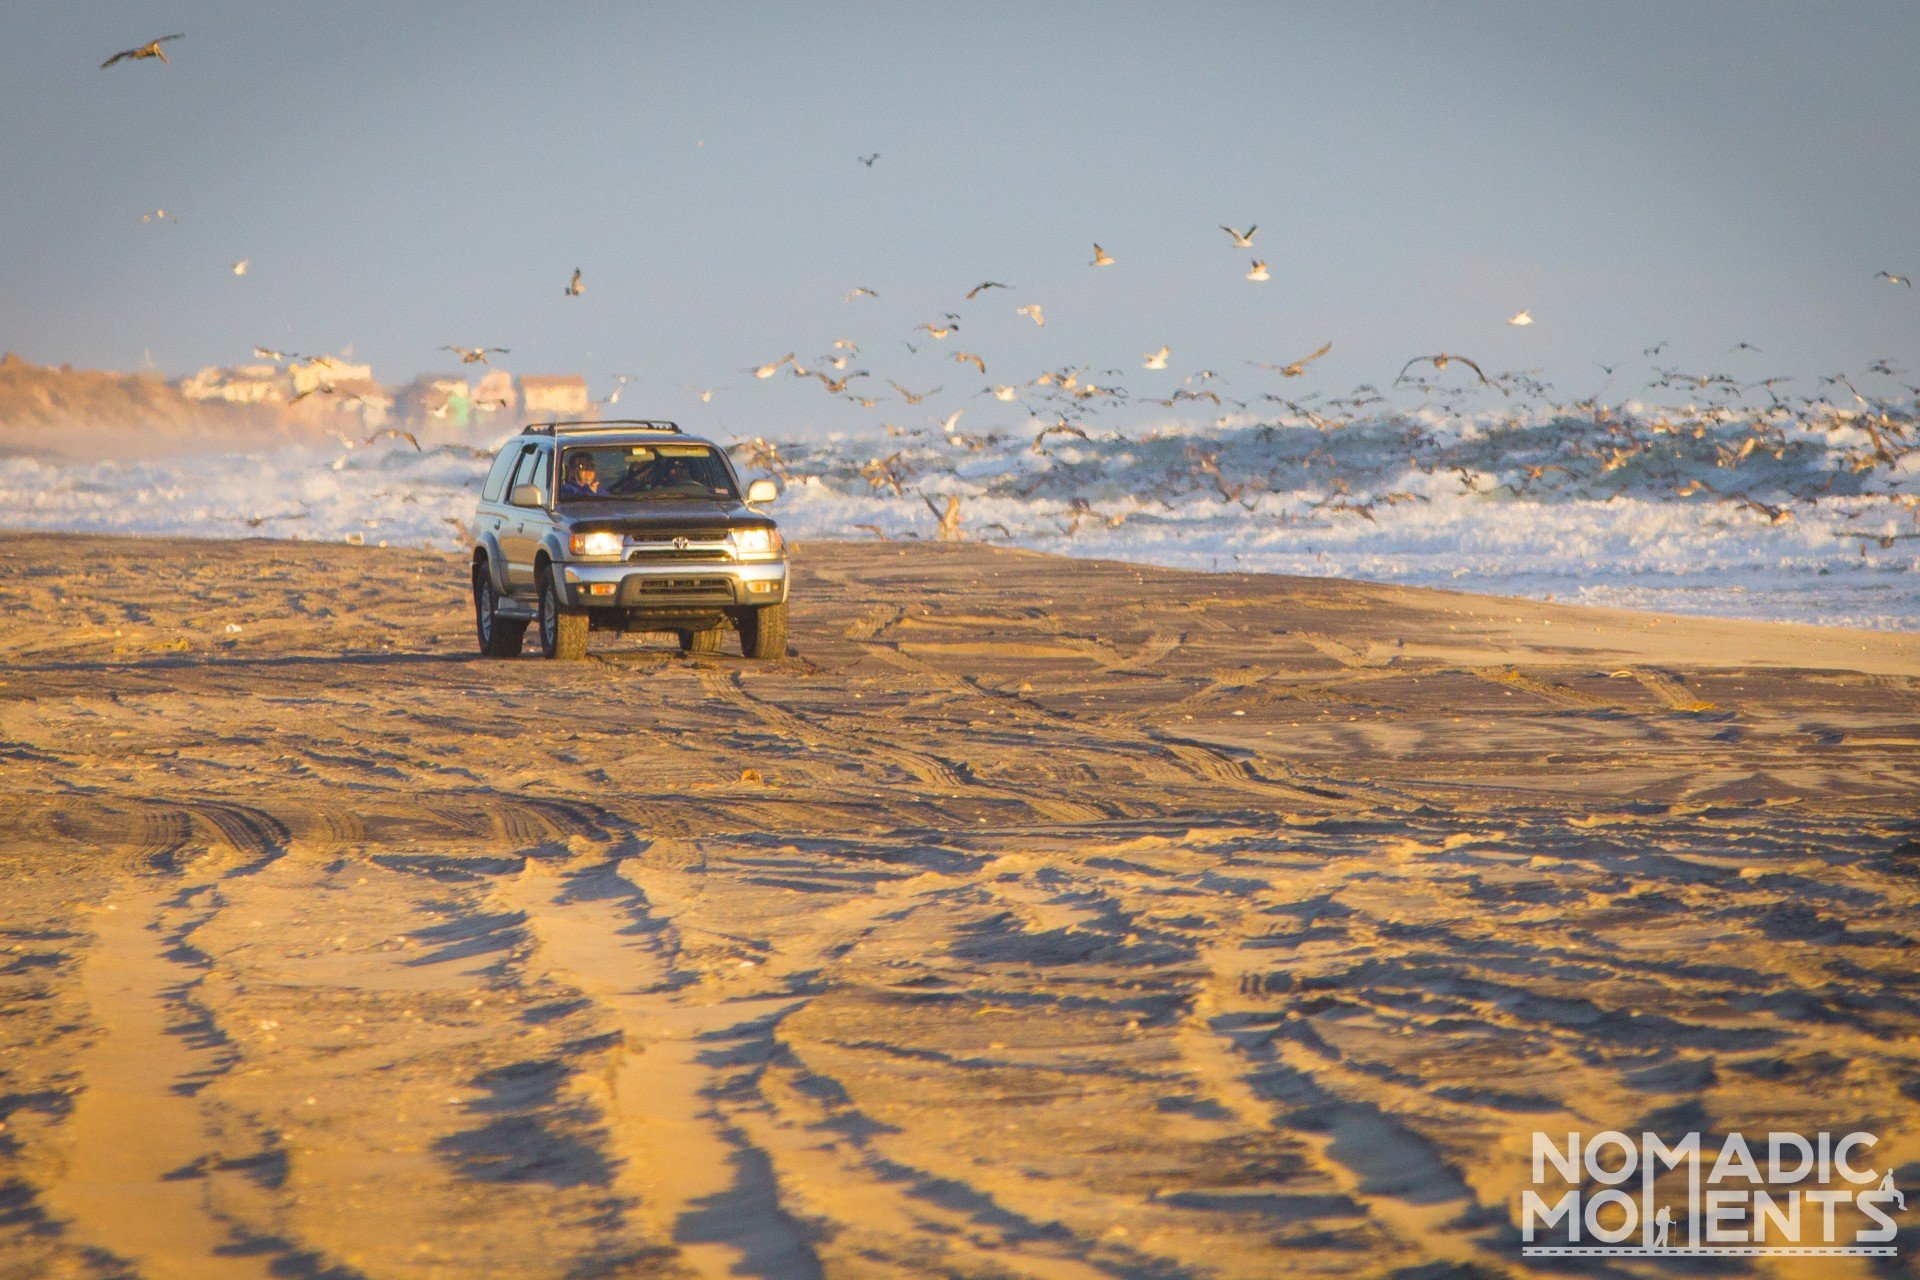 A vehicle driving on a beach while visiting the Outer Banks